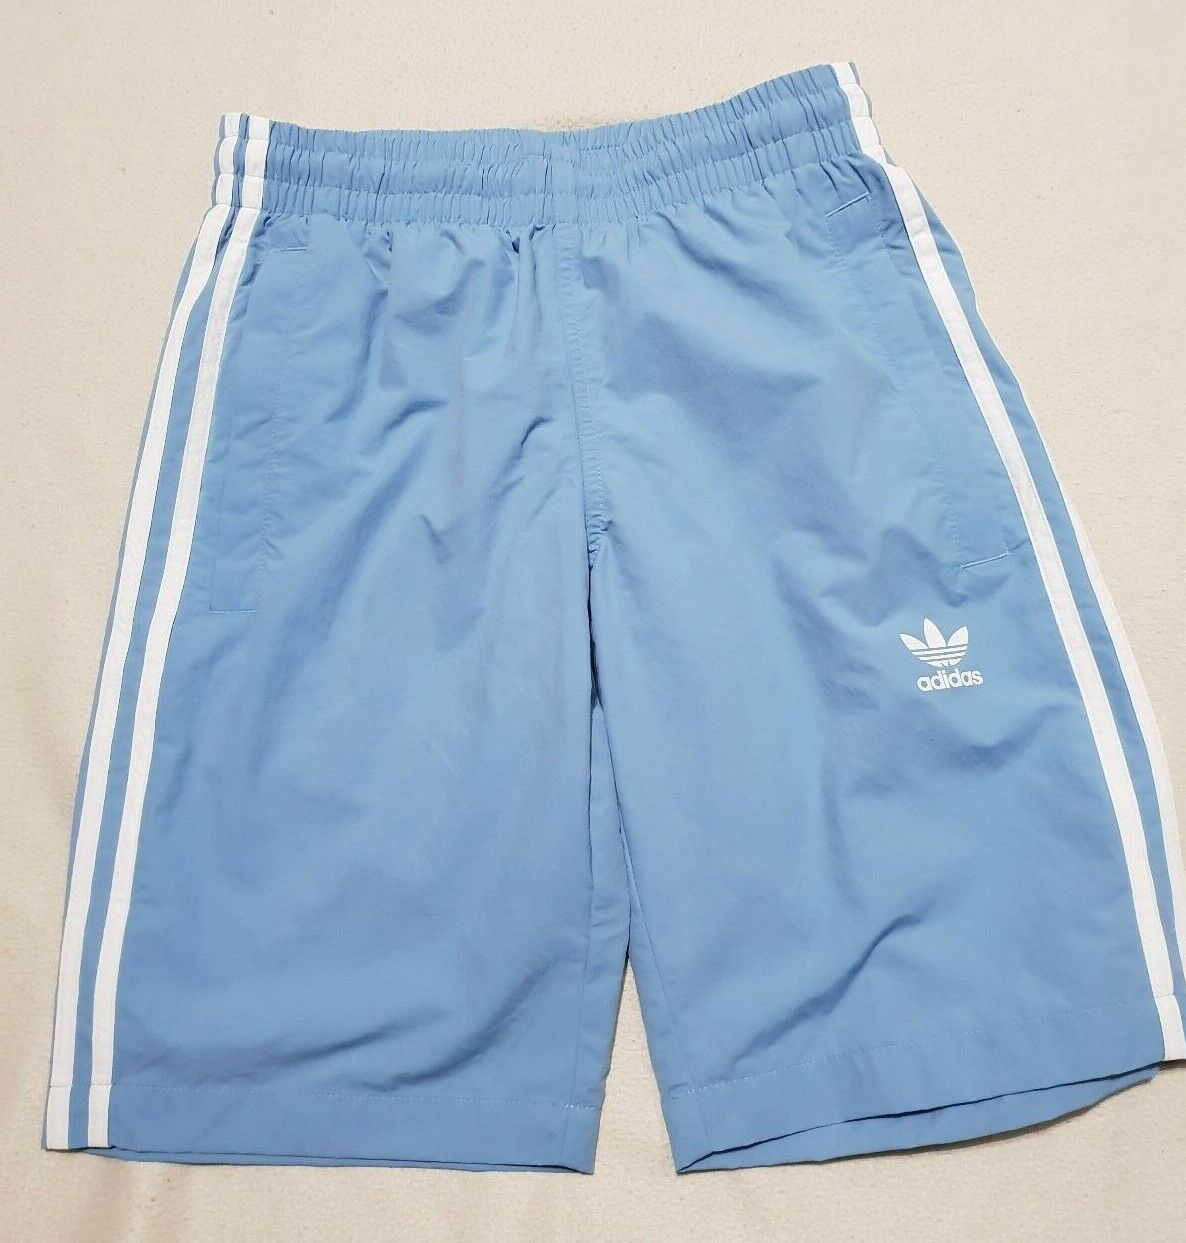 ADIDAS ORIGINALS ADIFarbe SWIM SHORTS Blau CW1306 - XS - 27-29   | Online Shop Europe